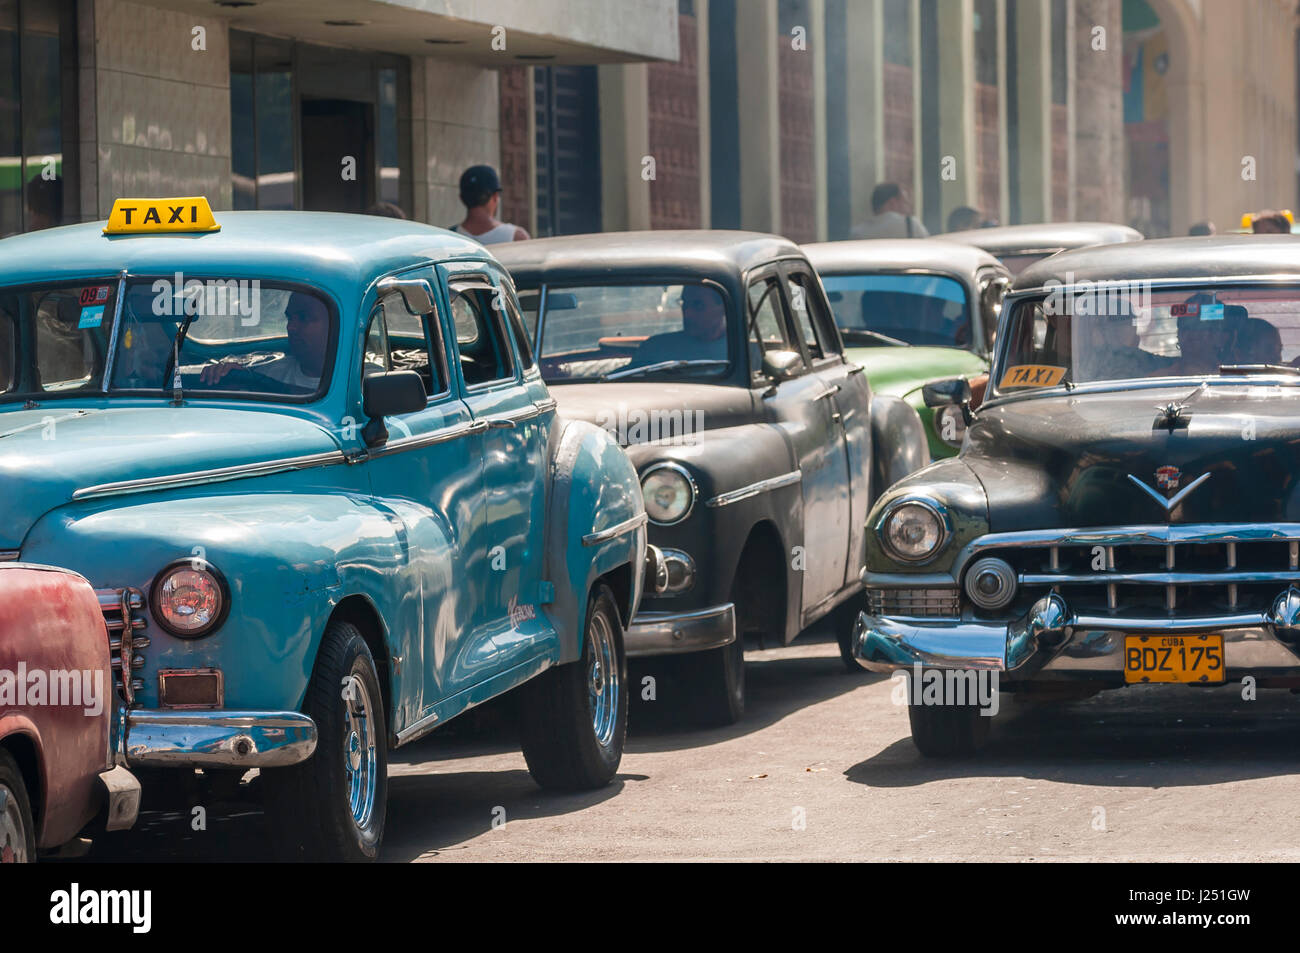 HAVANA - JUNE 2011: Vintage American cars acting as share taxis crowd the streets of Centro in a typical scene of - Stock Image